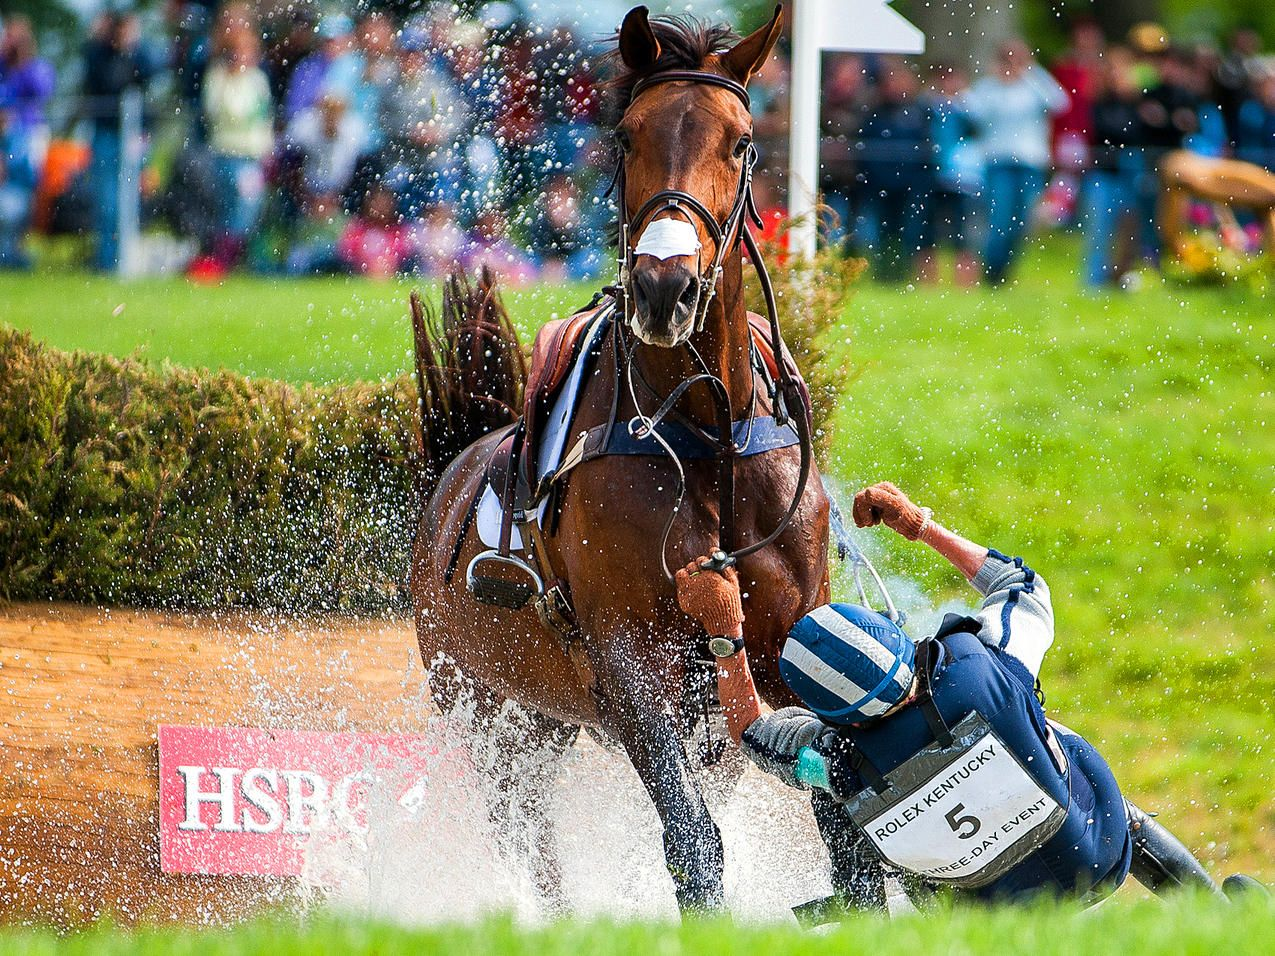 Water Fall - Karen O'Connor takes a fall at the HSBC Water ...